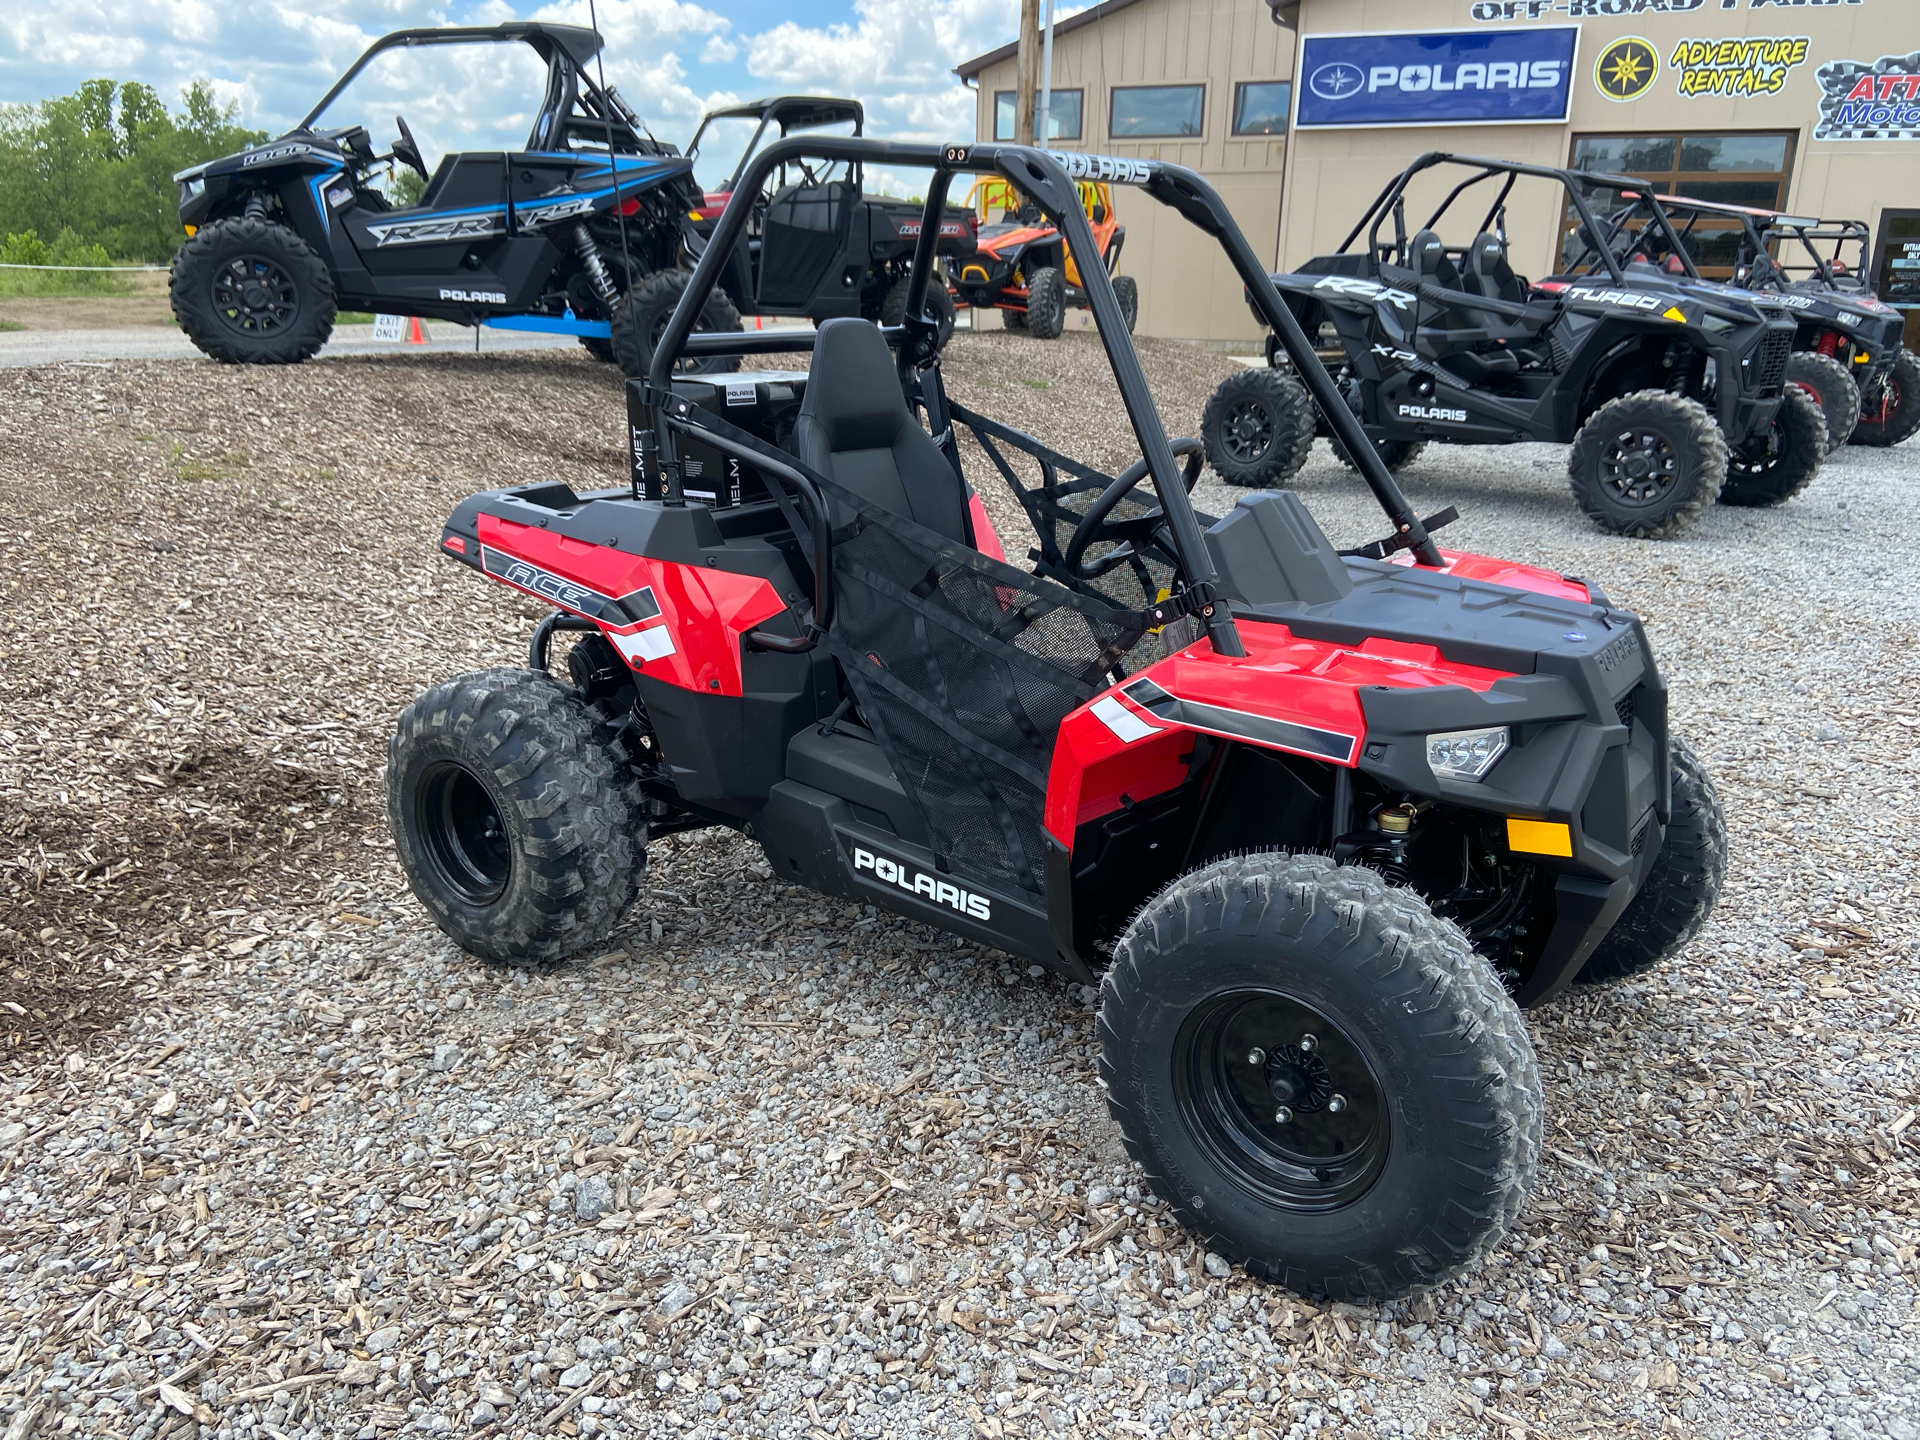 2019 Polaris Ace 150 EFI in Attica, Indiana - Photo 1